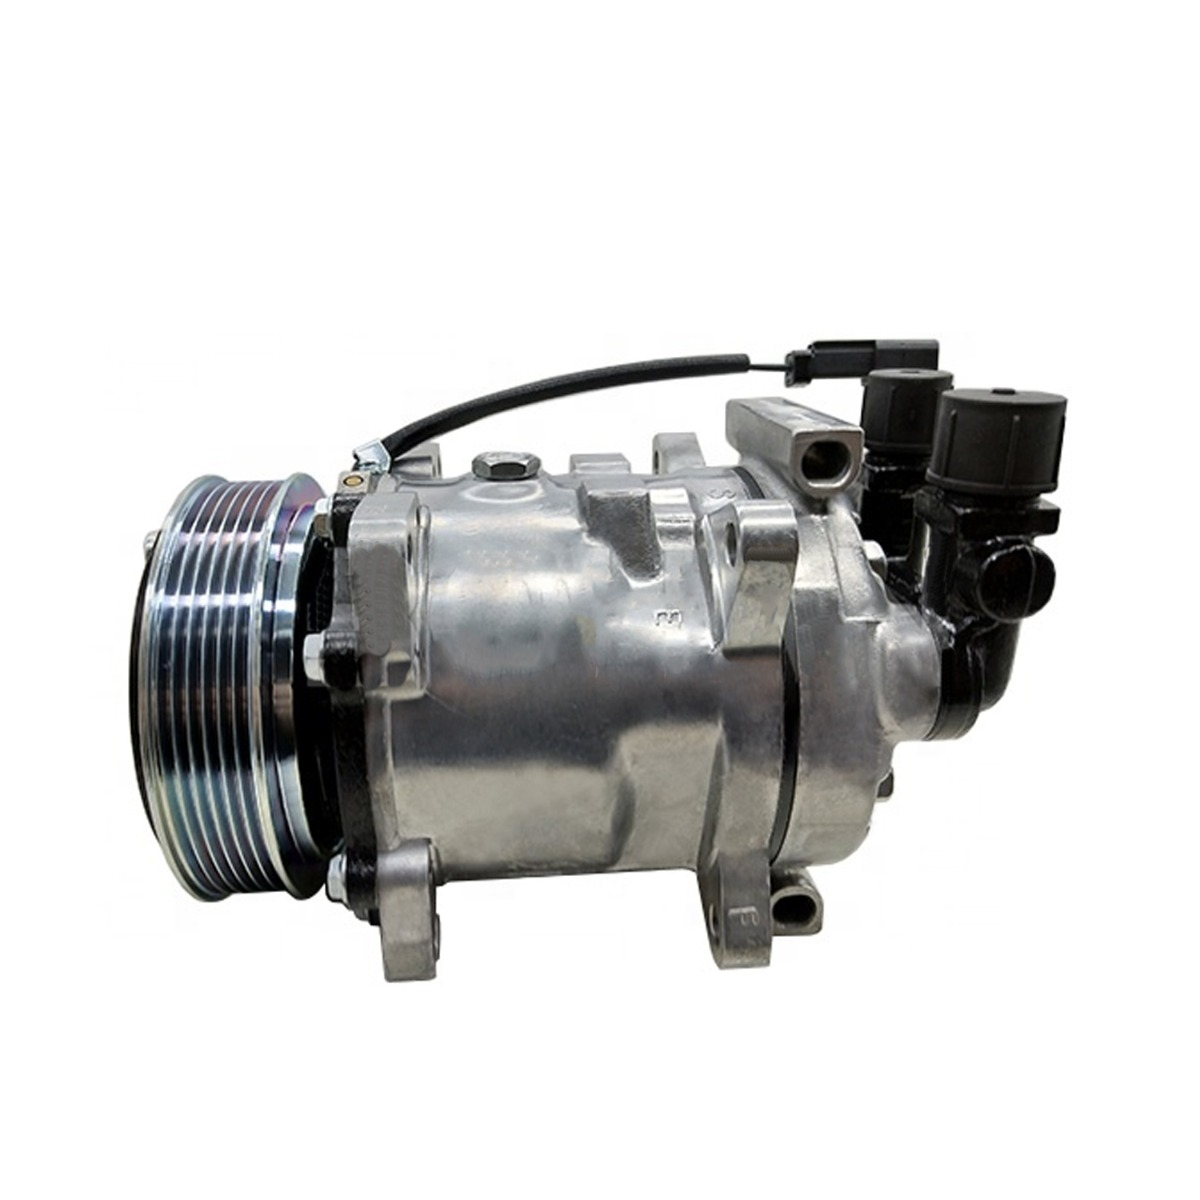 Air Conditioning Compressor 7023580 12V Compatible with Bobcat Skid Steer Loader A770 L750 S770 S850 T750 T770 T870